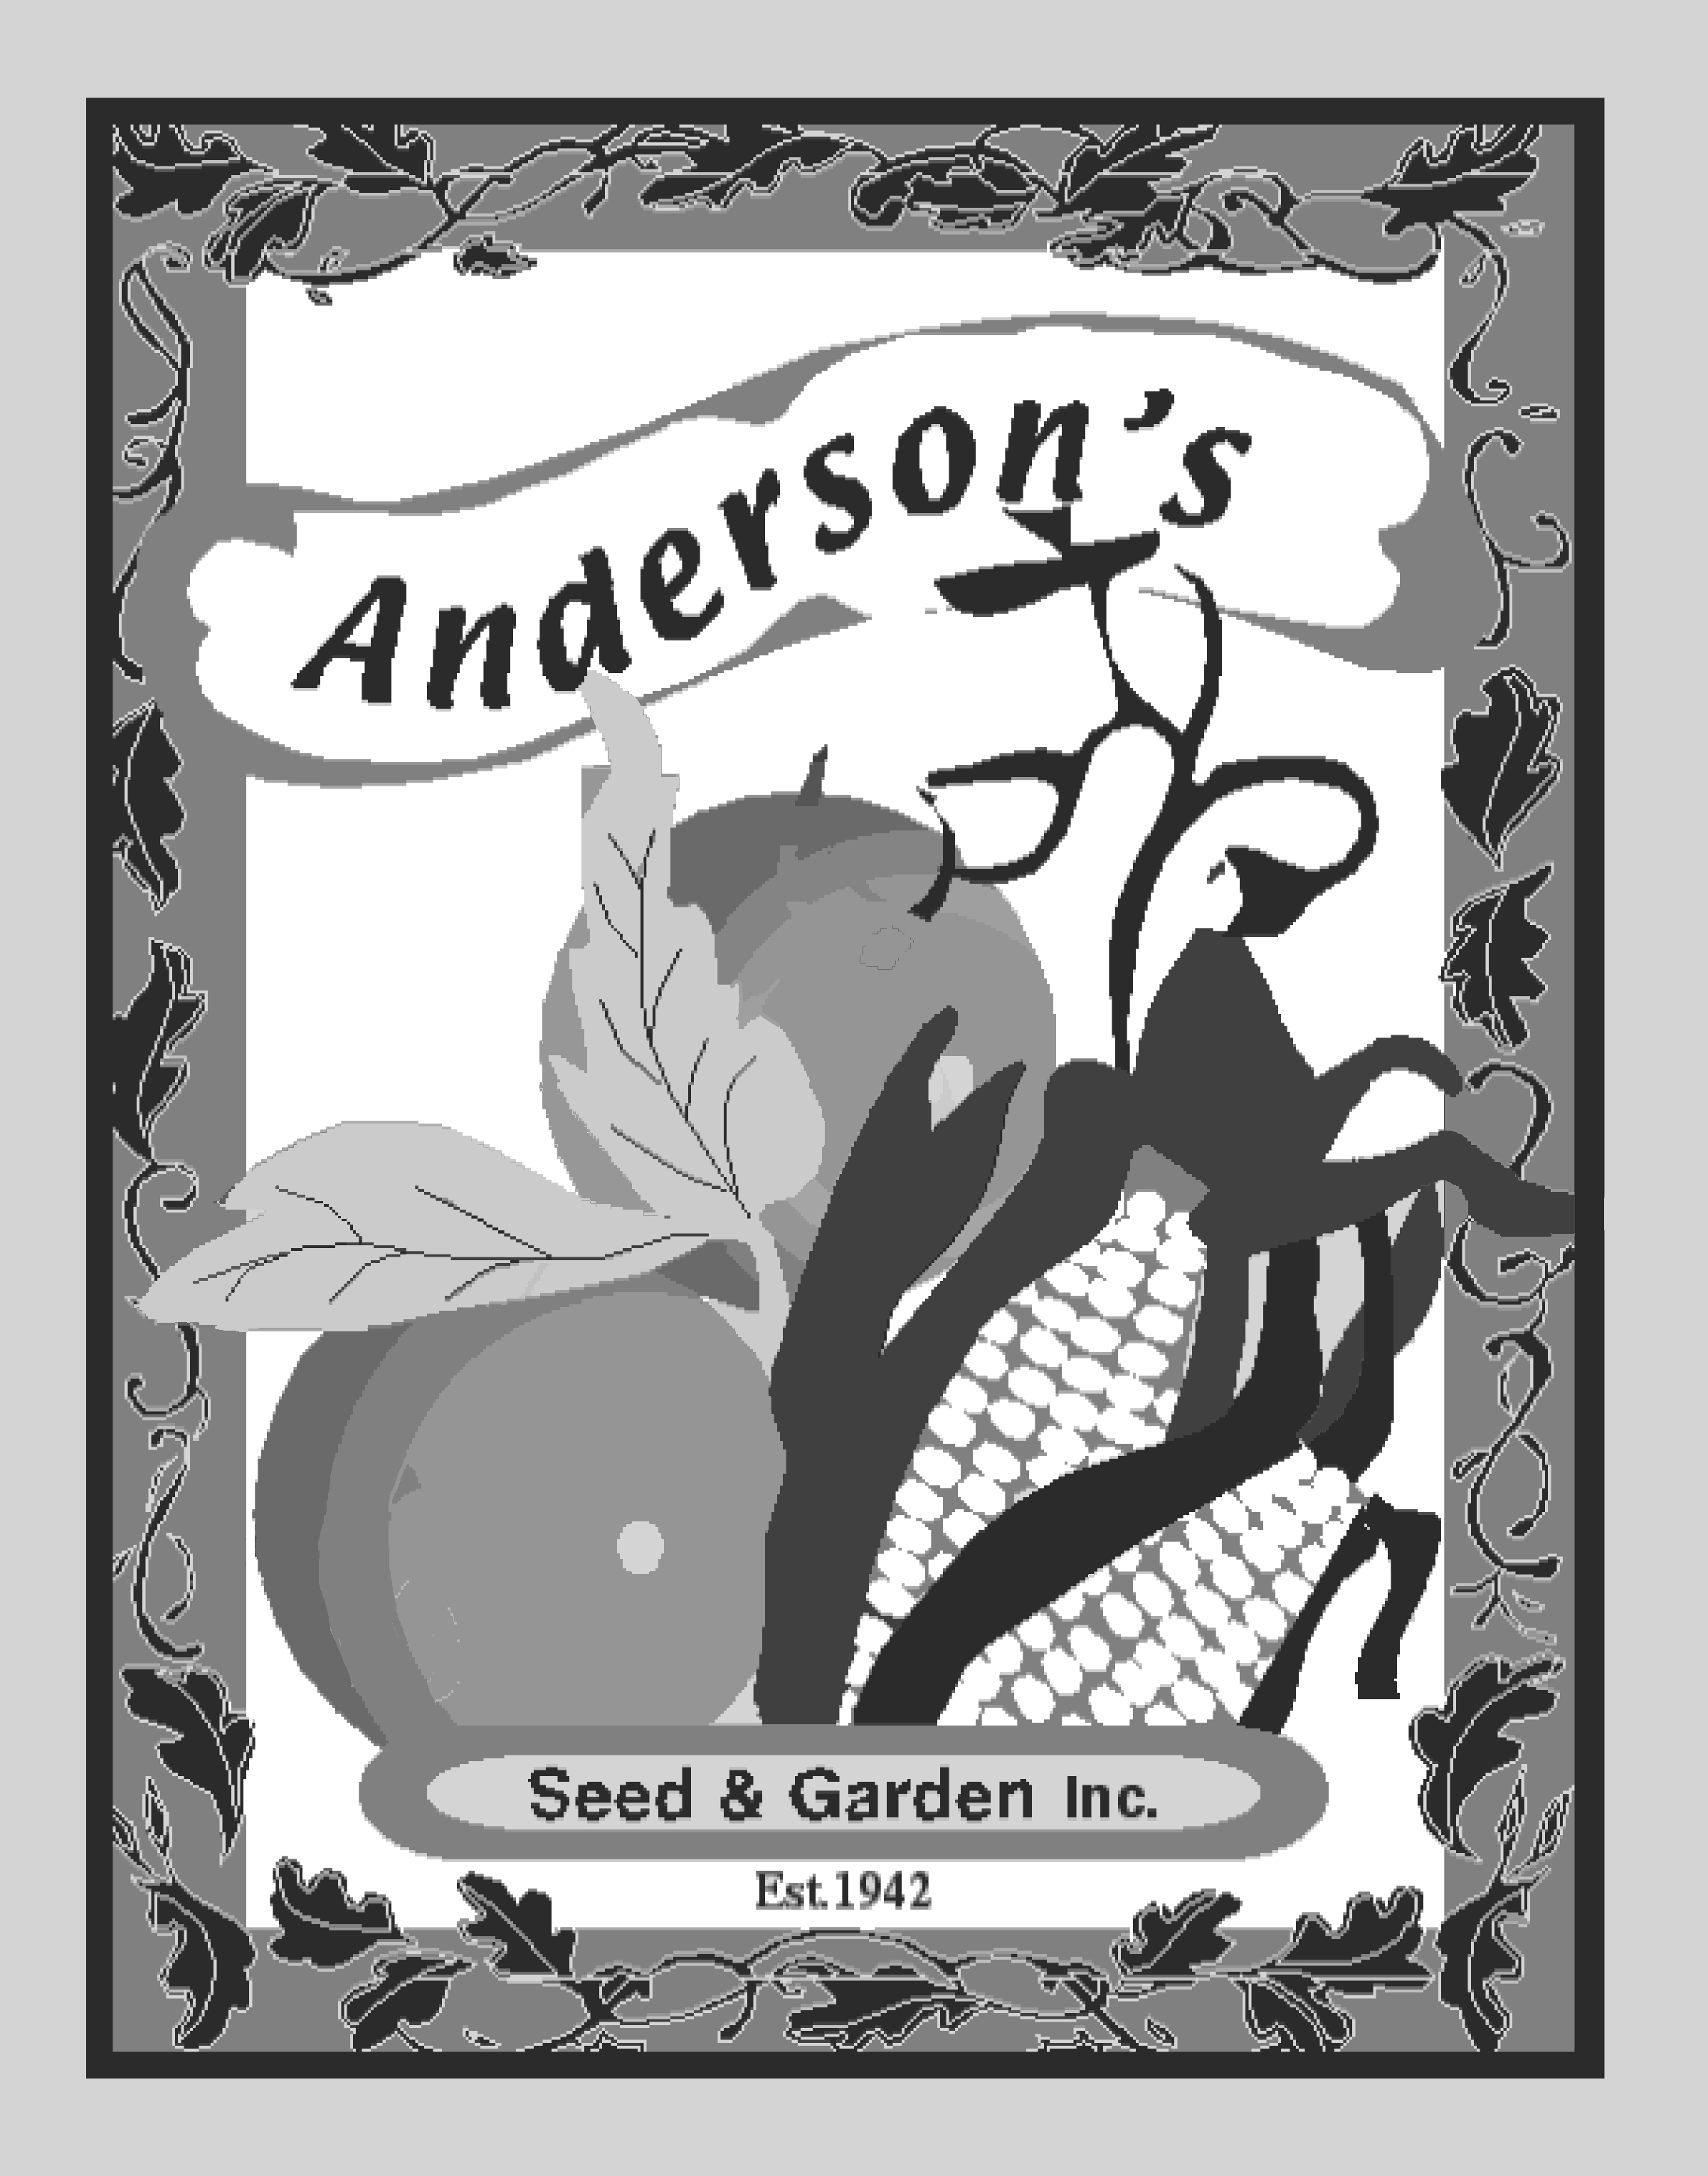 Red Cherry Heirloom Tomato Seed 1 oz.